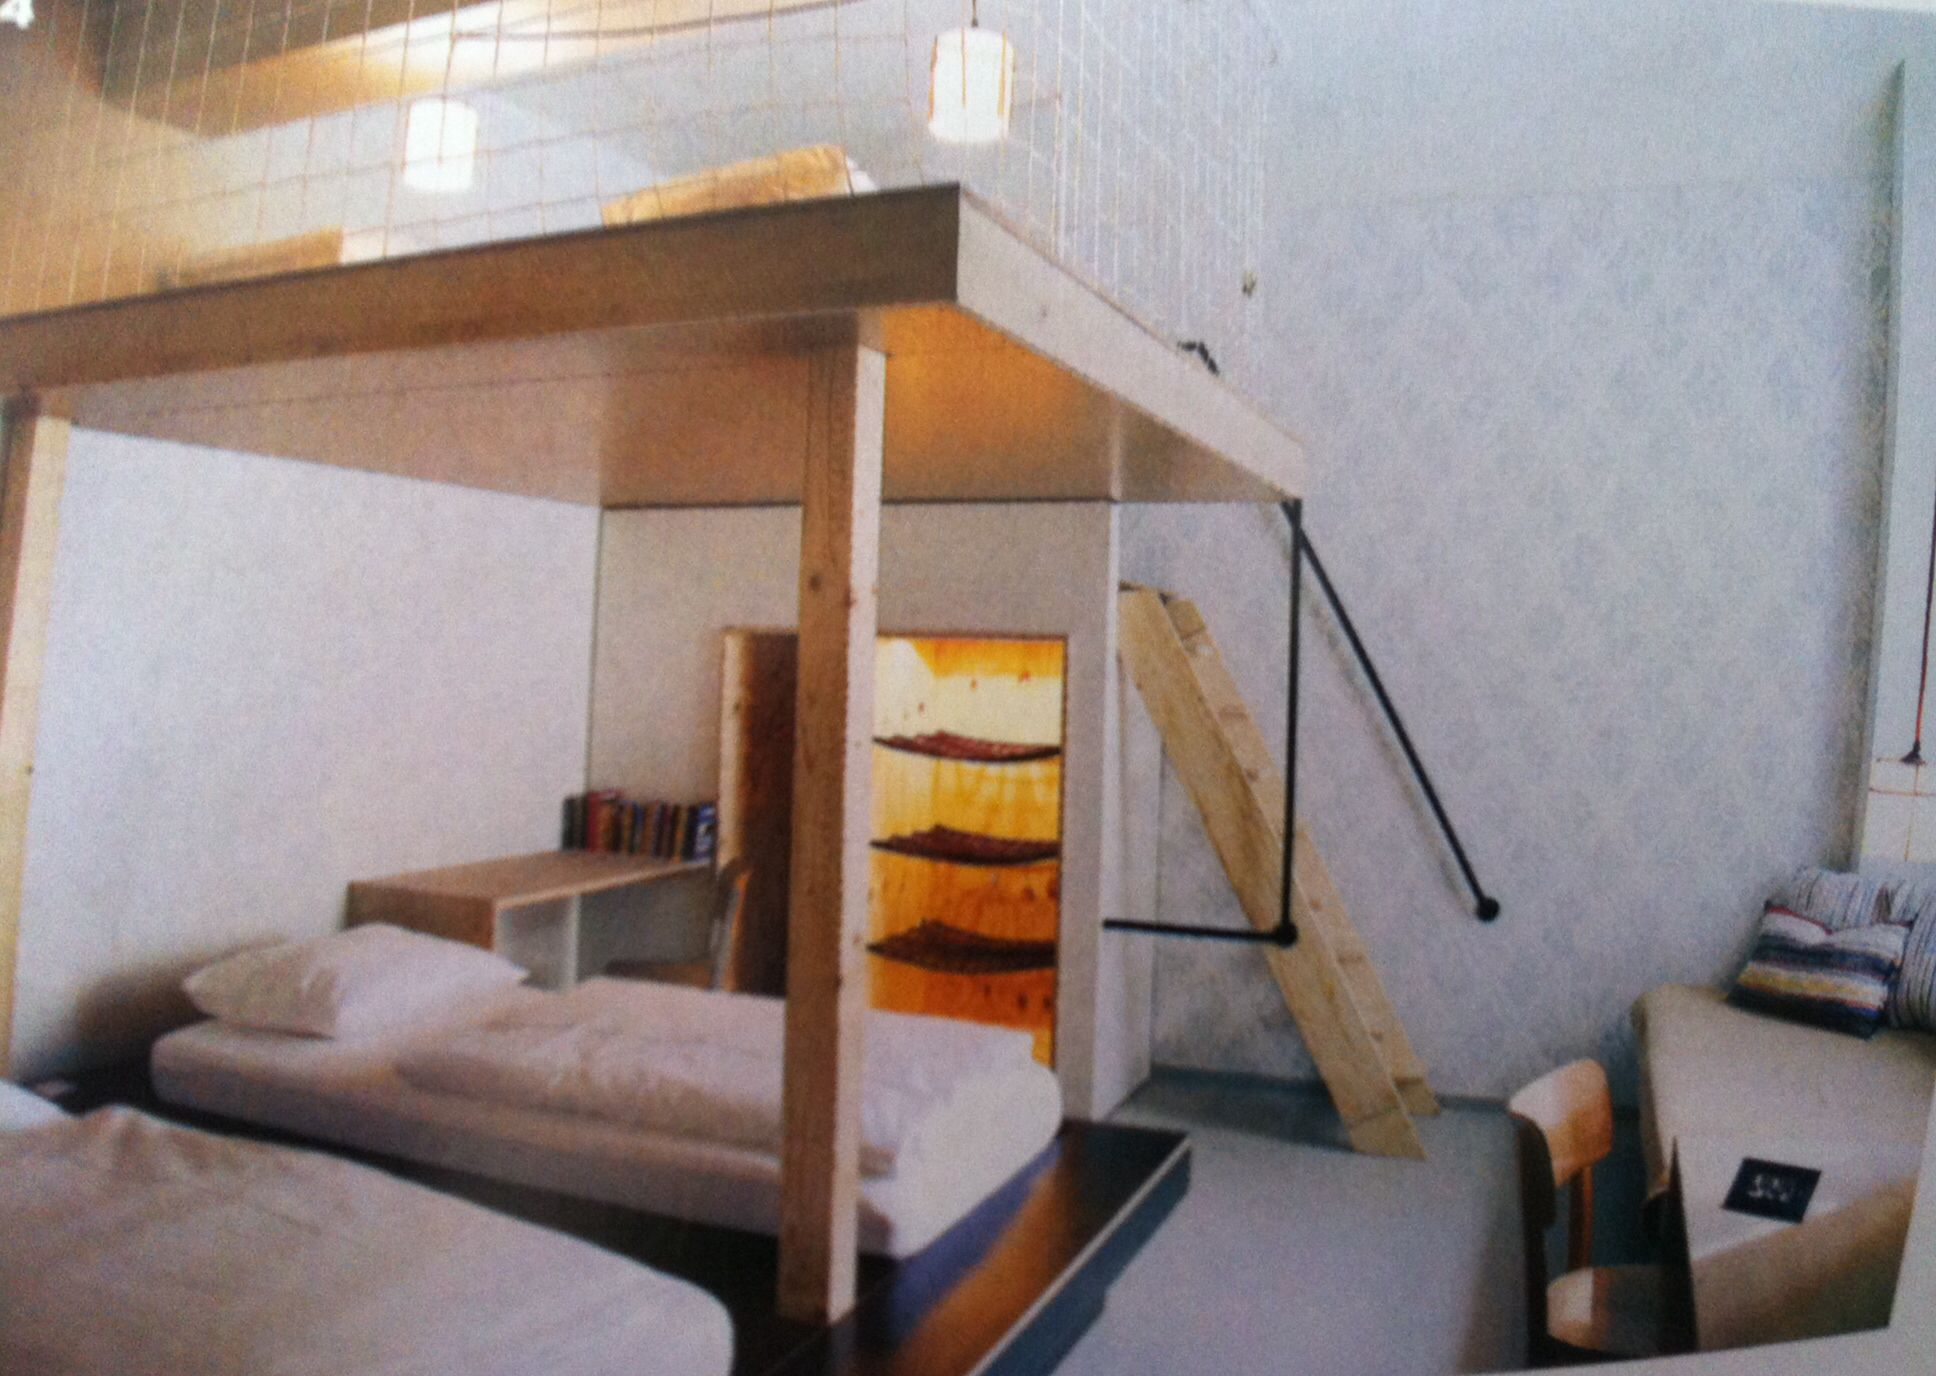 Kids Bedroom Mezzanine mezzanine | chambre enfants | pinterest | mezzanine, kids rooms